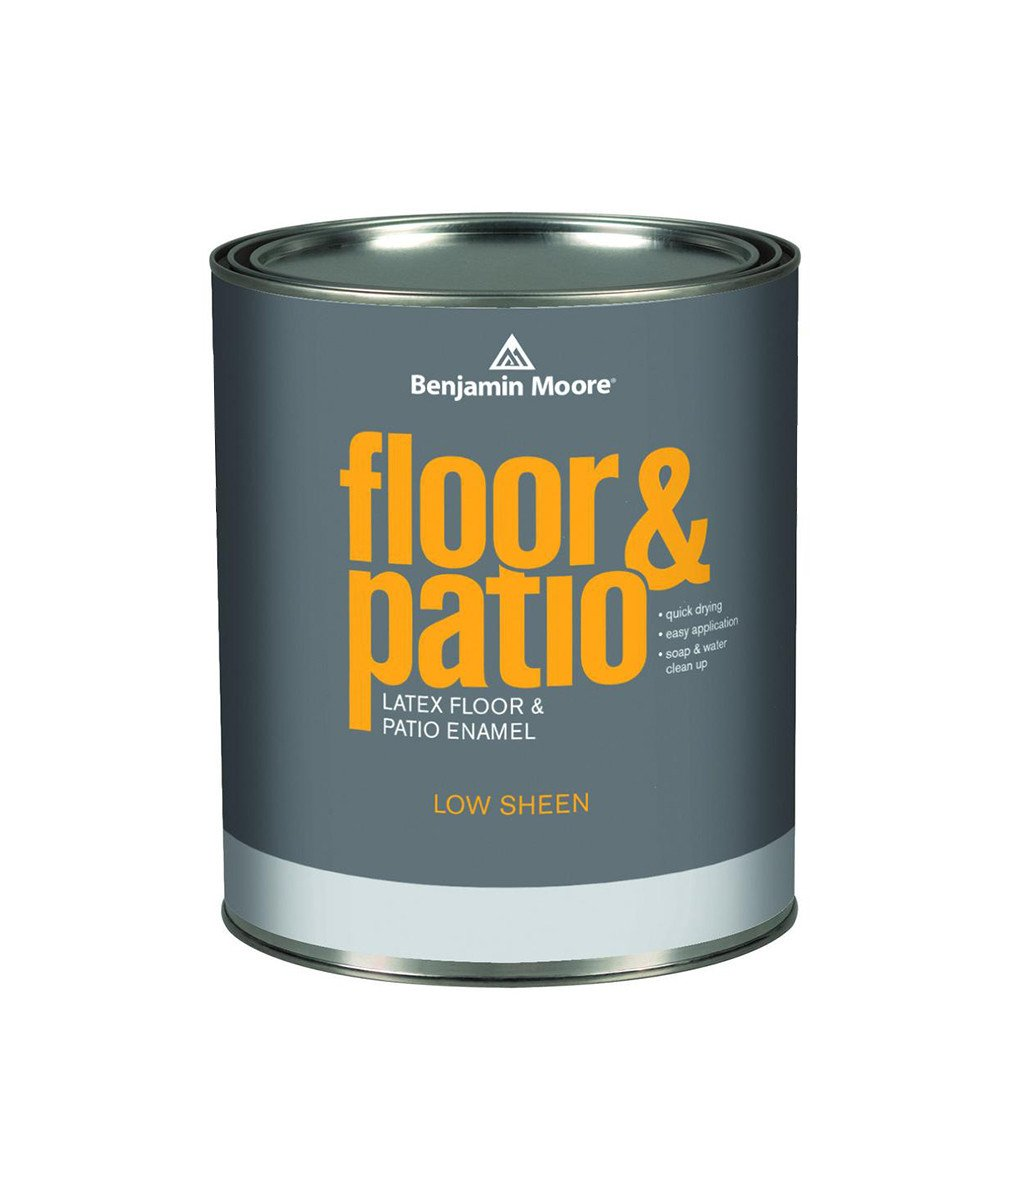 Floor & Patio Low Sheen Enamel Low Sheen (BM)